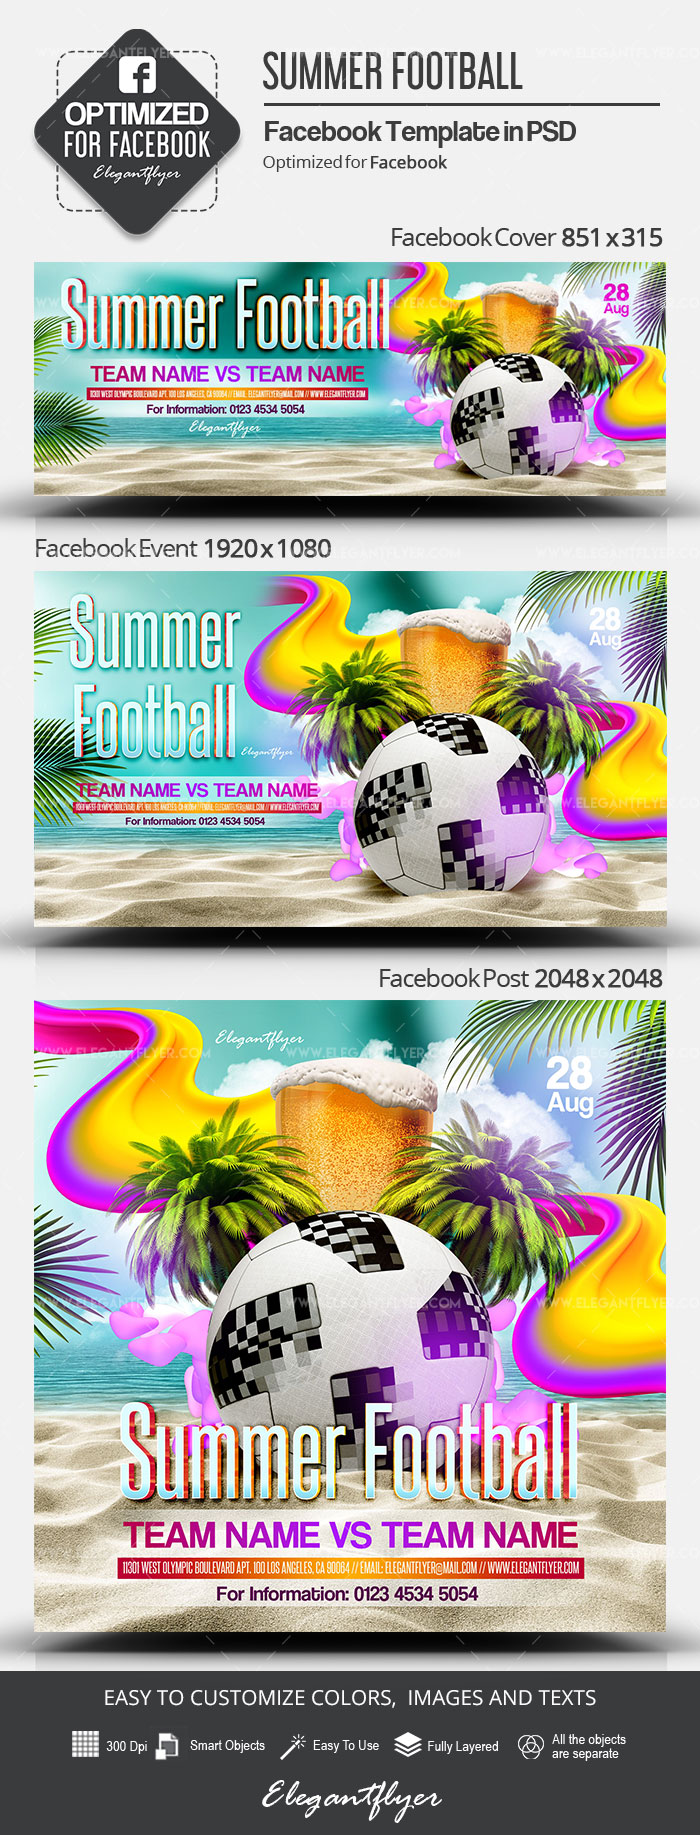 Summer Football – Facebook Cover Template in PSD + Post + Event cover